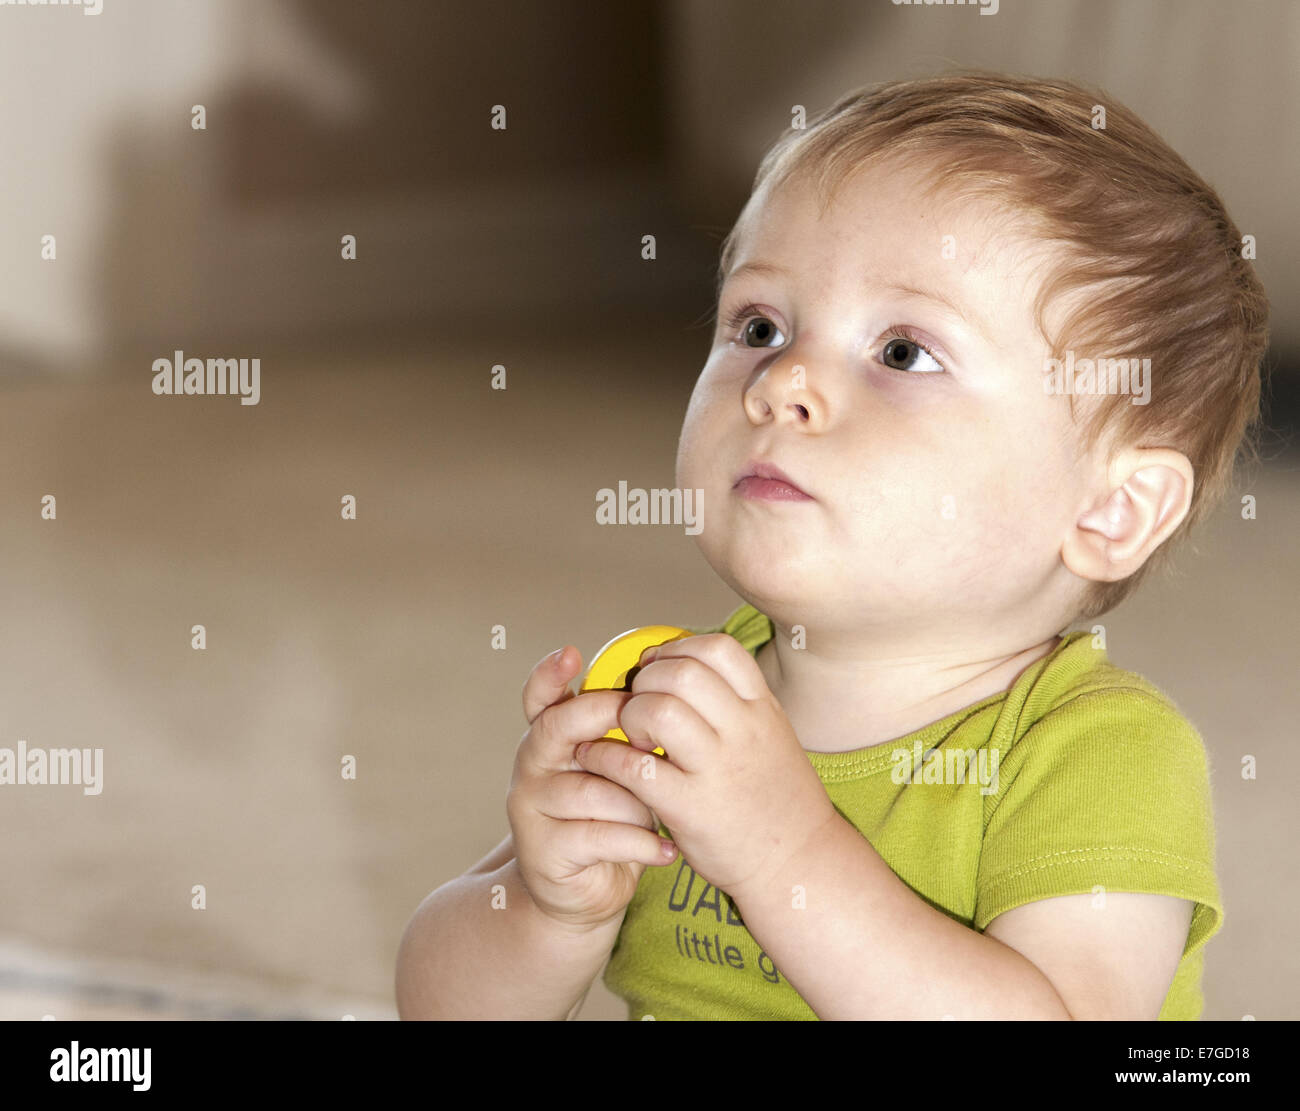 Adorable little boy with blond hair is holding a yellow block/toy.  Clermont Florida USA - Stock Image